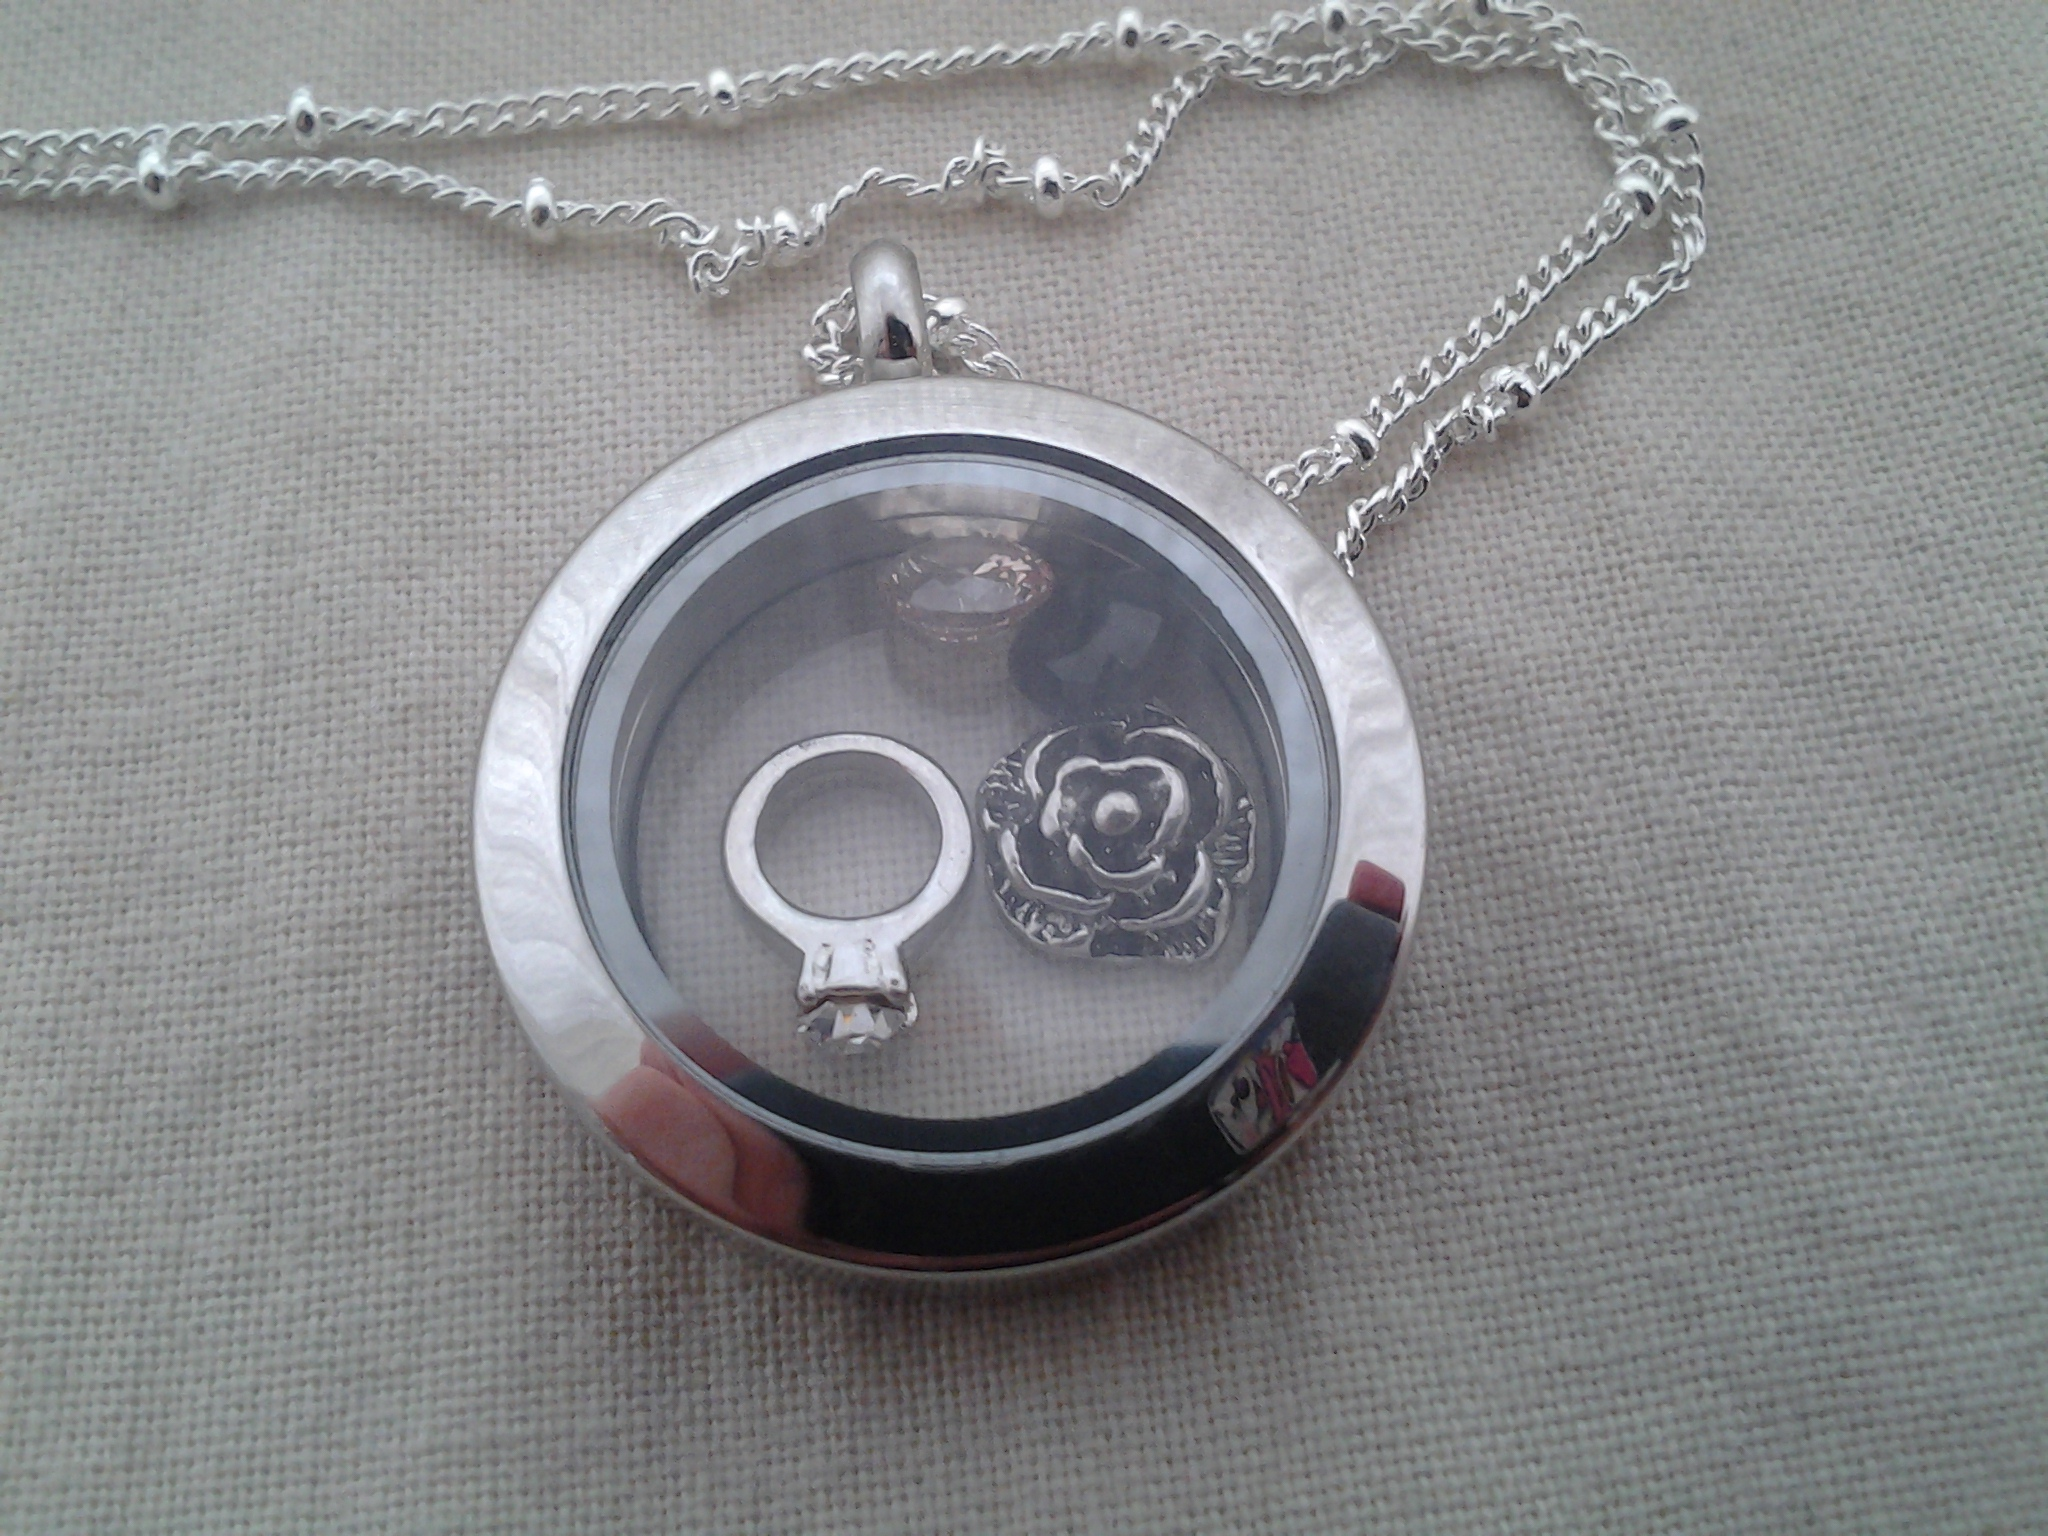 Origami Owl Living Locket Review | Emily Reviews - photo#22